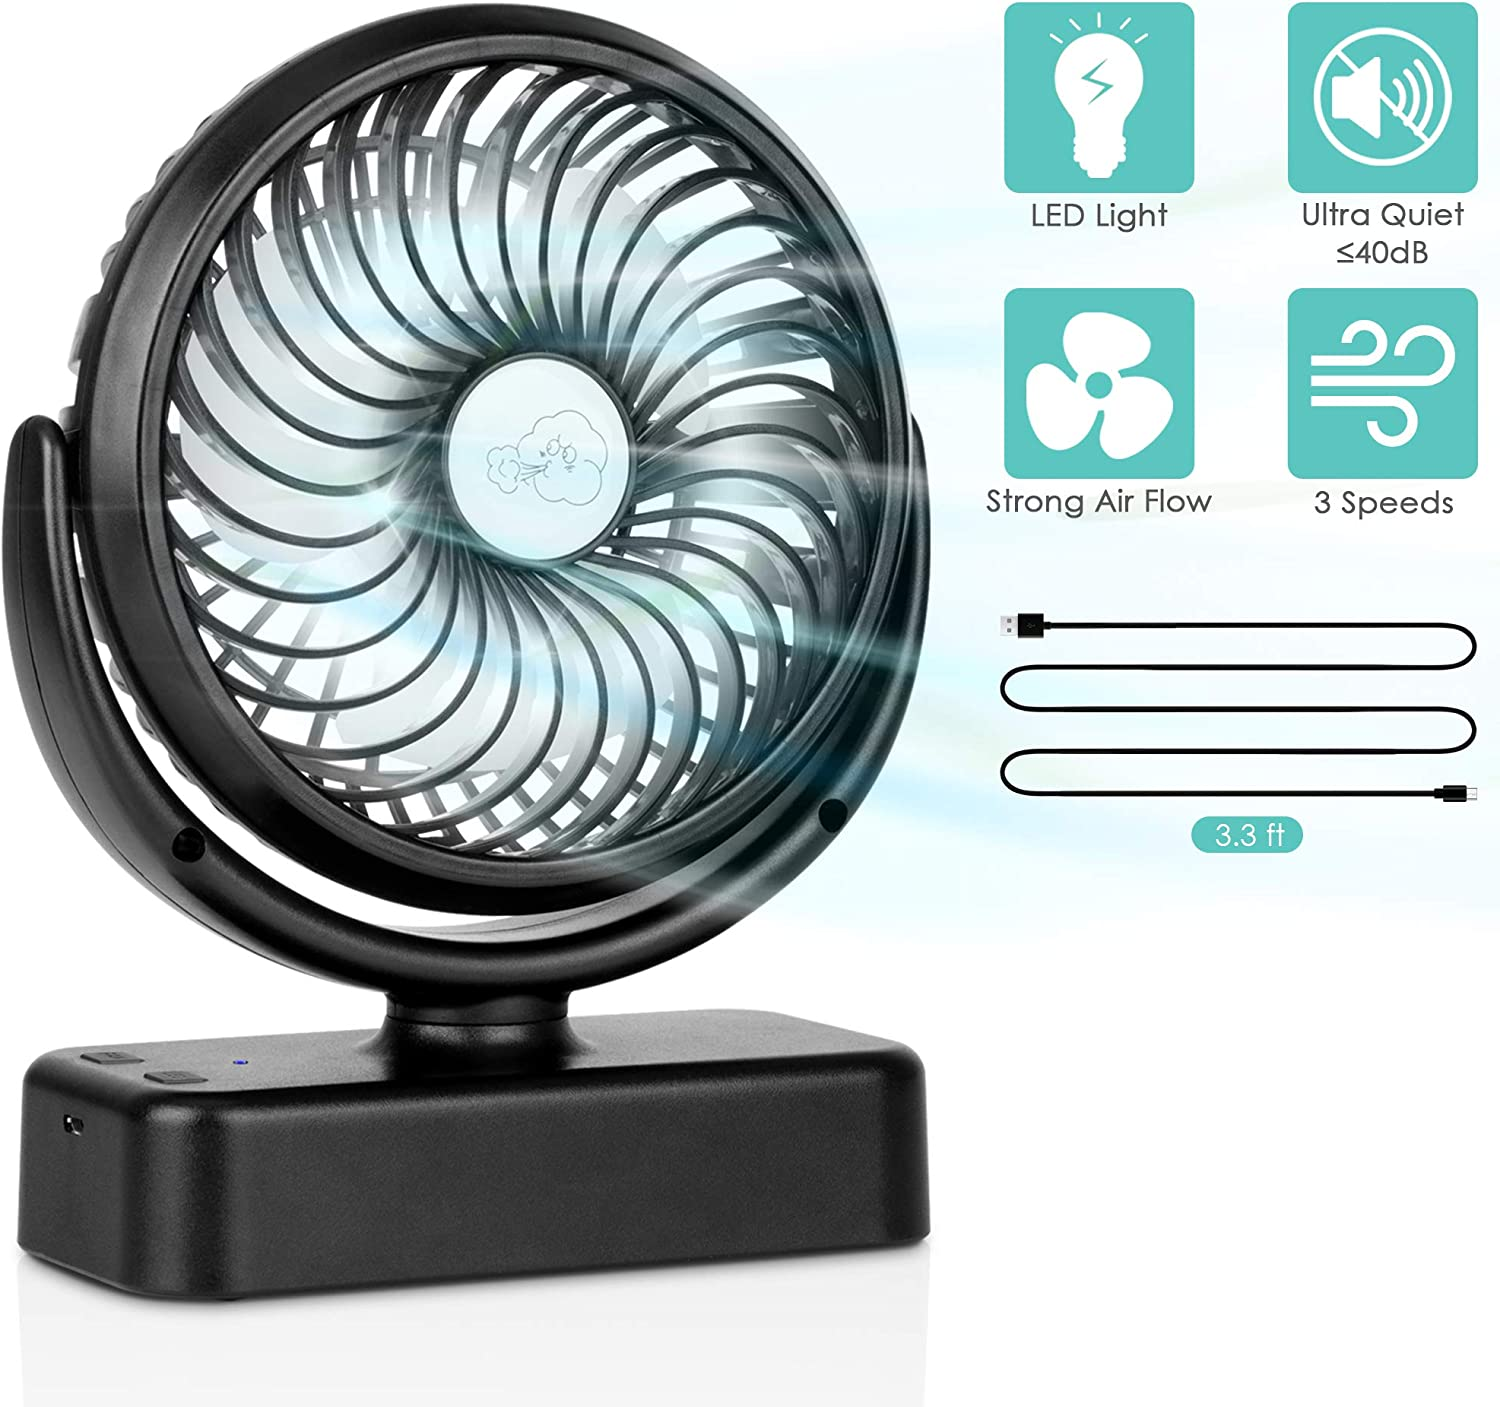 Small Desk Fan, USB Powered Table Fan With Strong Wind, Bright LED Lights, Hanging Hook, 360° Rotation, Personal Fan for Home Office and More